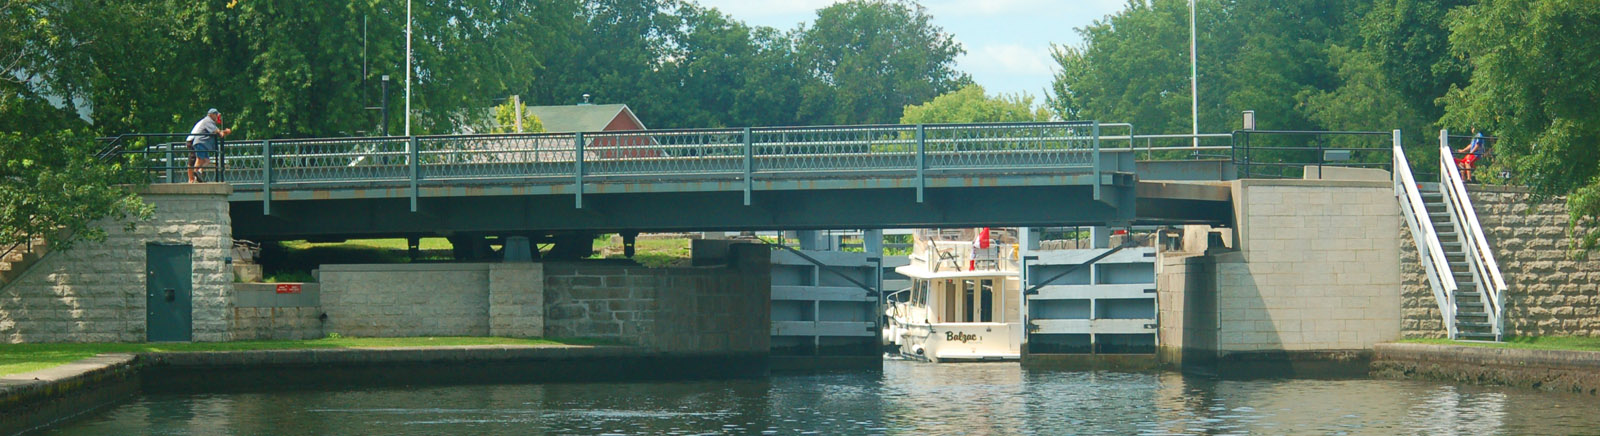 Merrickville Swing Bridge